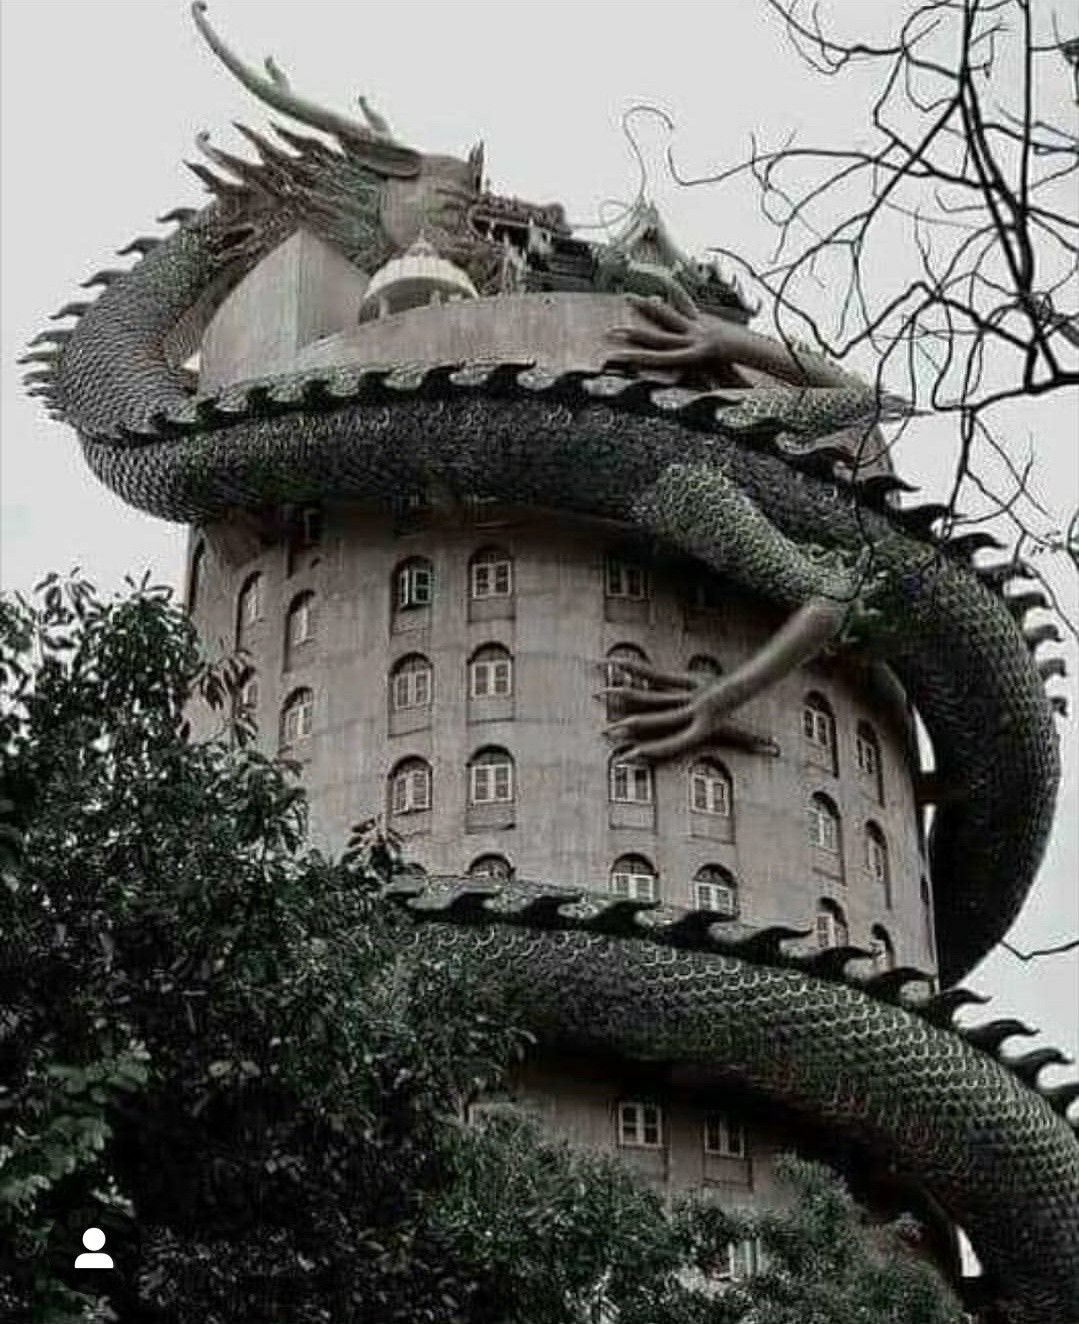 Dragon House Image By Michael Hathaway On Cool Stuff